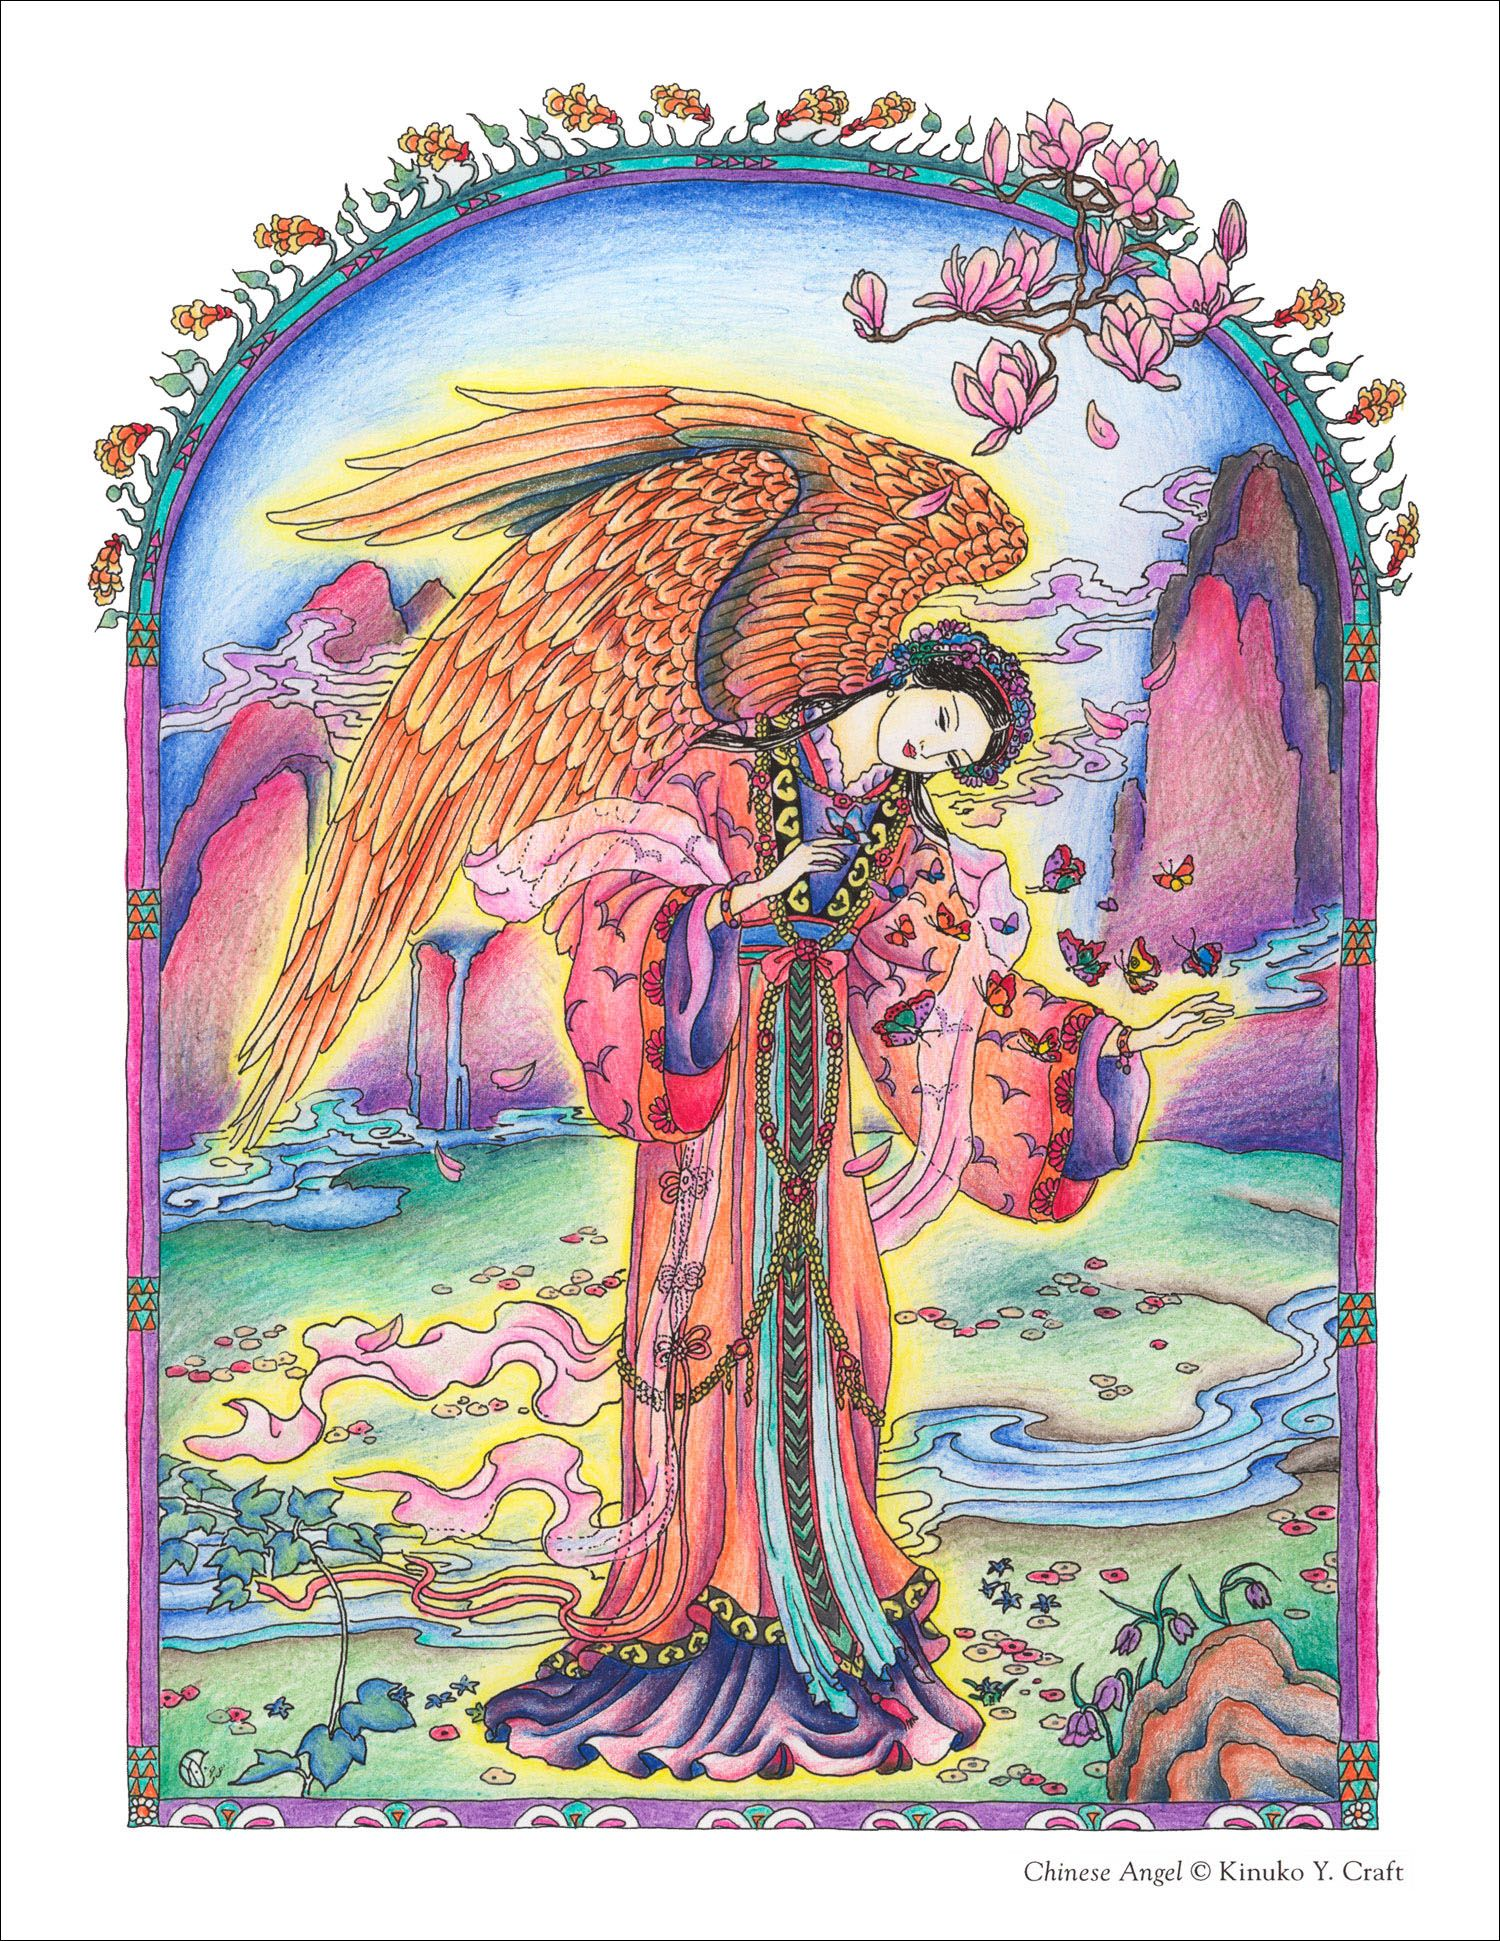 Sample Coloring Page From Myth Magic An Enchanted Fantasy Coloring Book By Kinuko Y Craft Coloring Books Horror Artwork Animal Coloring Books